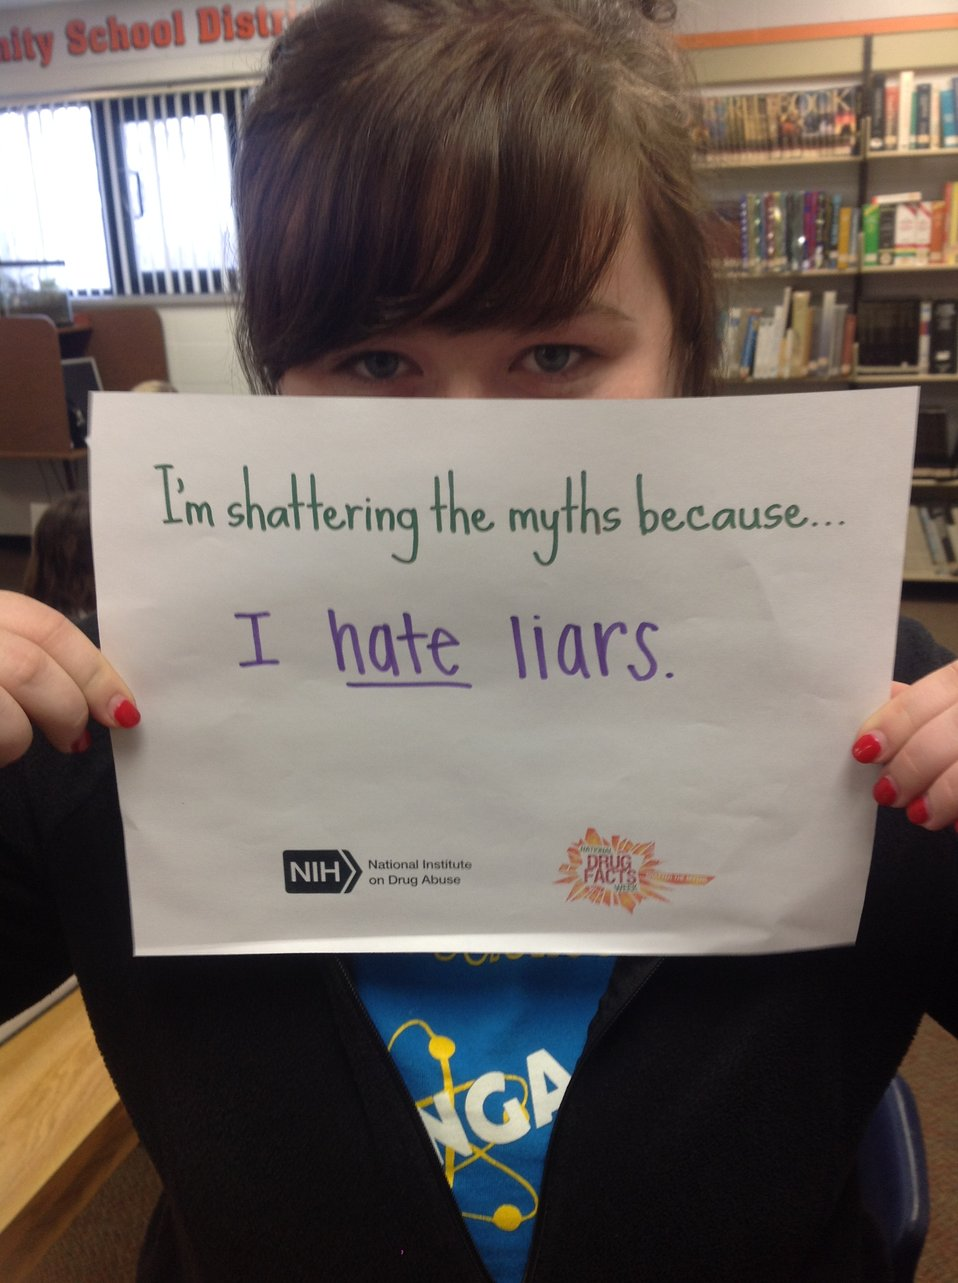 I'm Shattering the Myths Because...